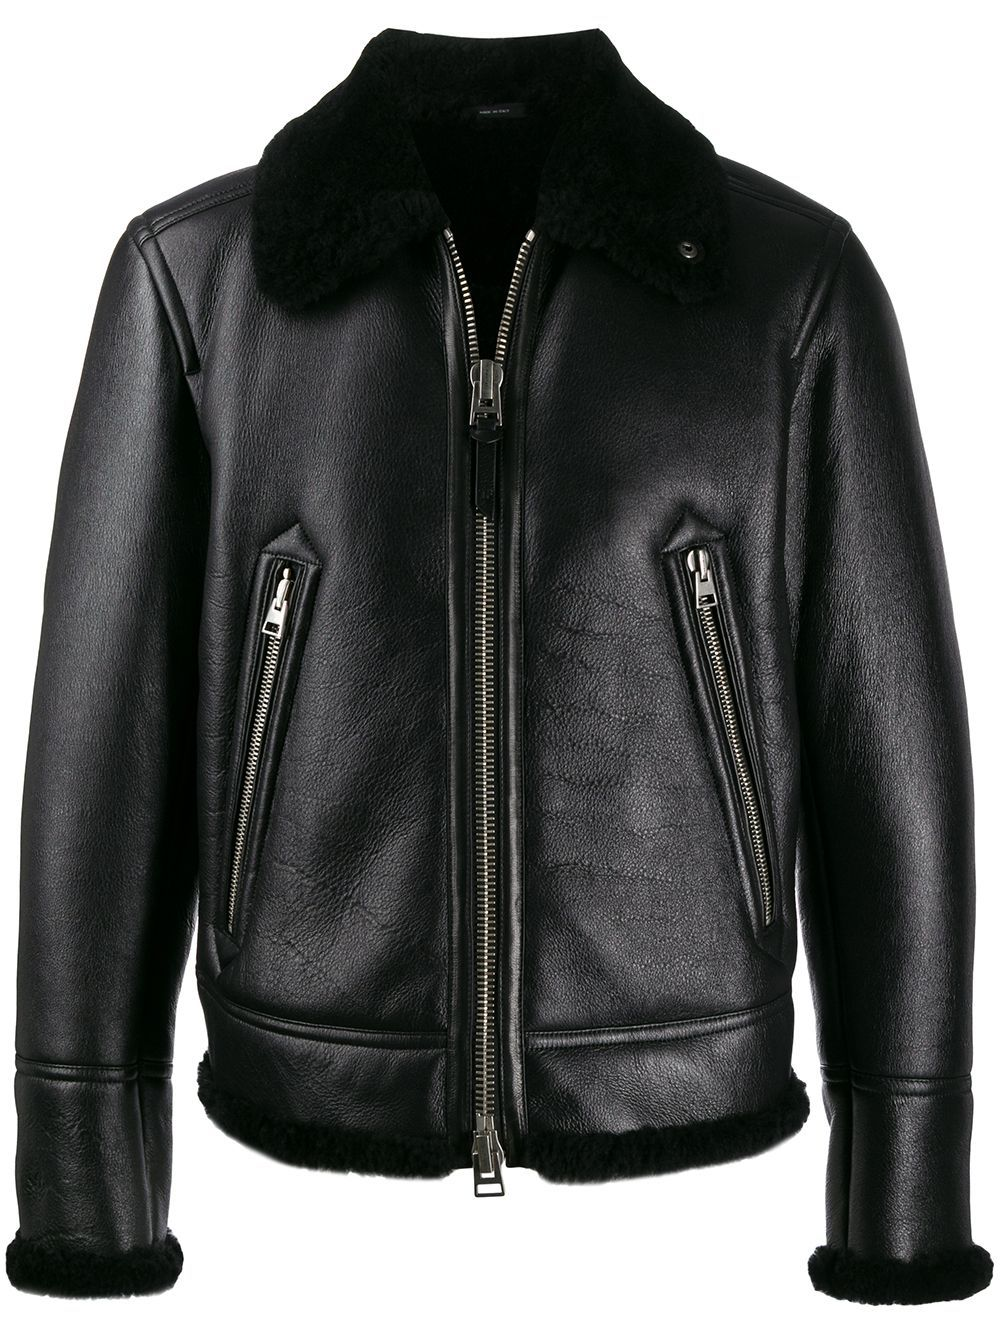 Tom Ford Wool Lined Leather Jacket Farfetch Leather Jacket Black Leather Jacket Tom Ford [ 1334 x 1000 Pixel ]